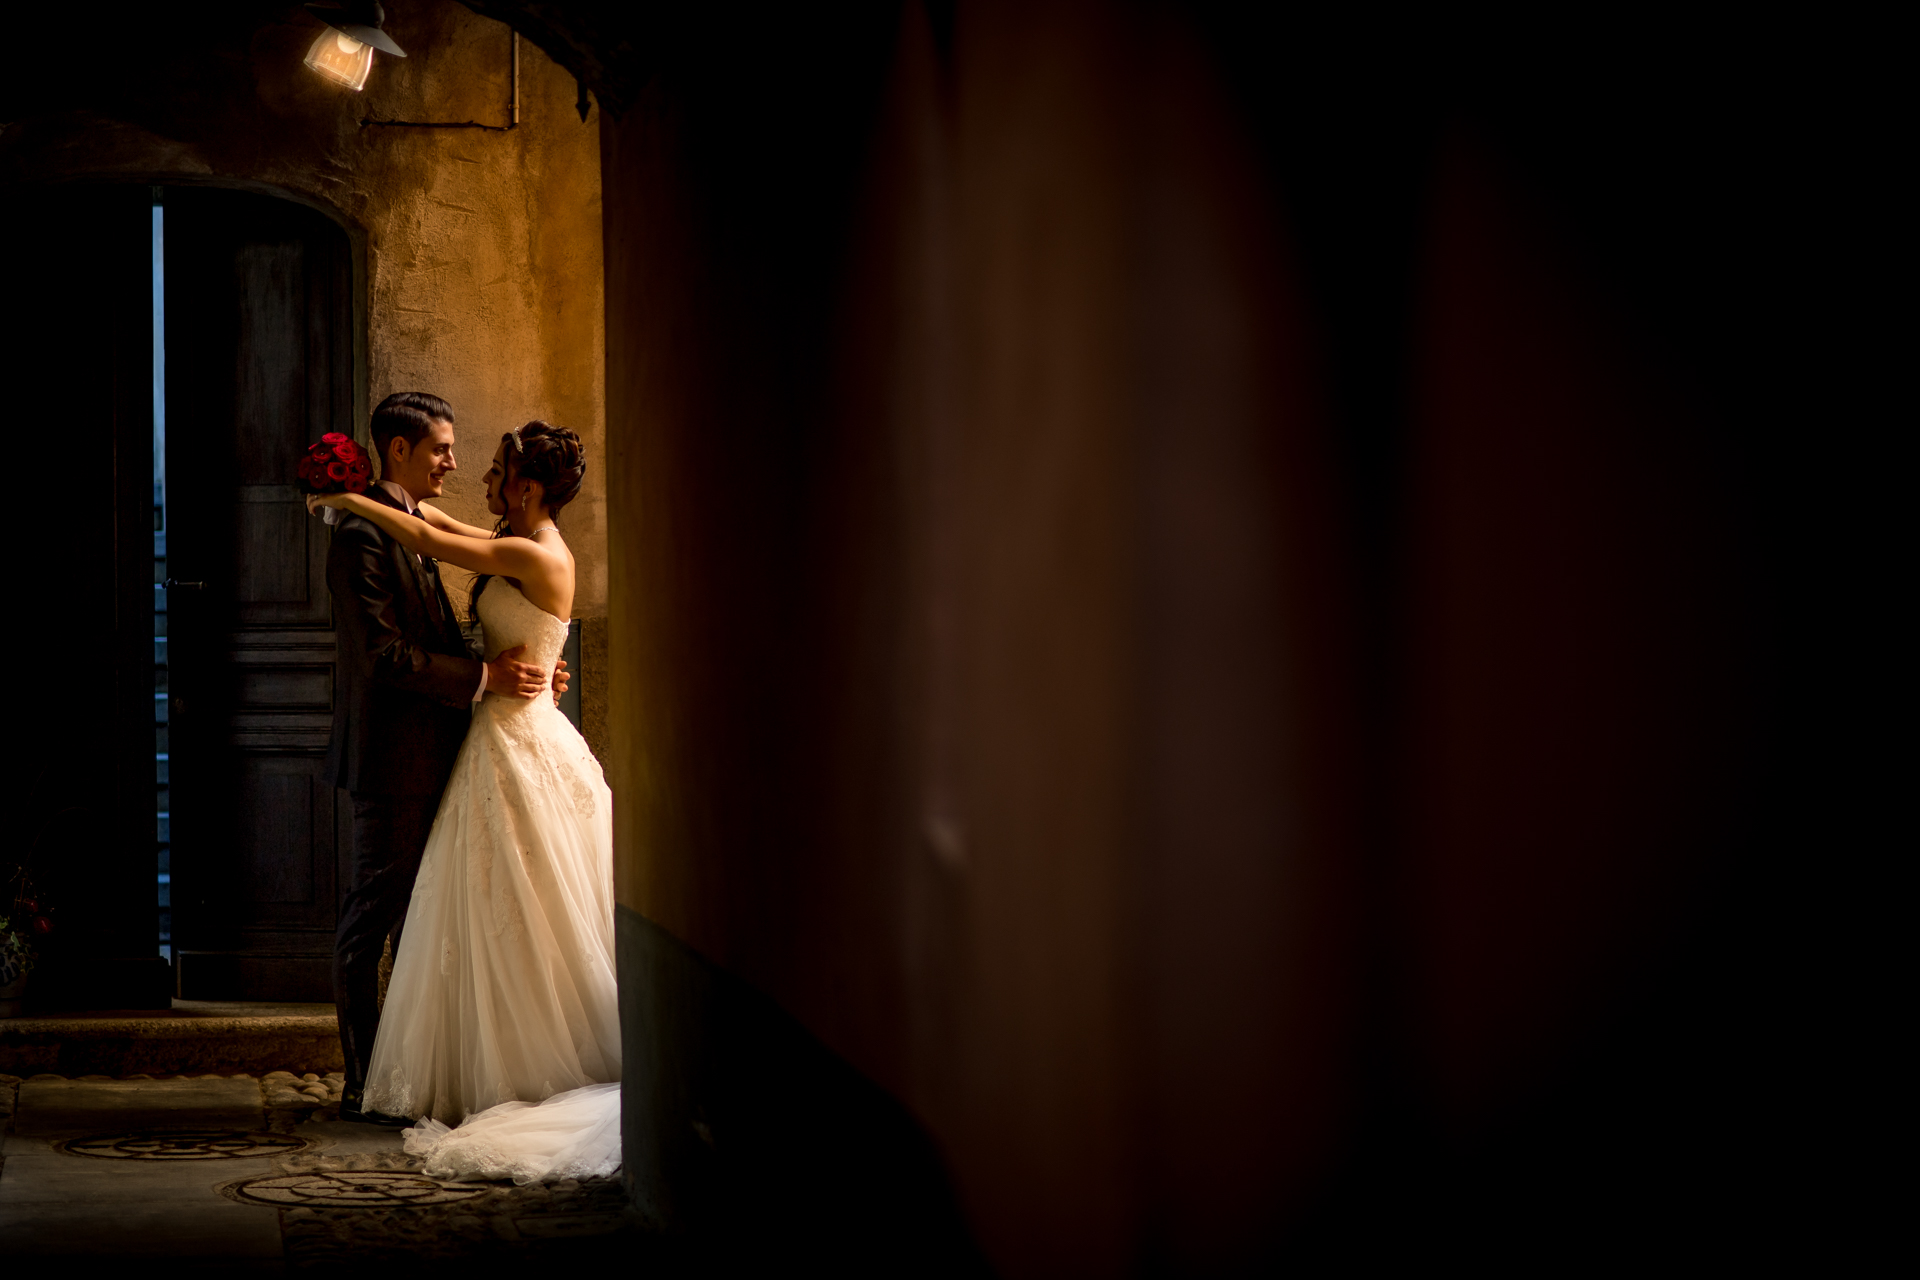 Wedding Photographer Venezia